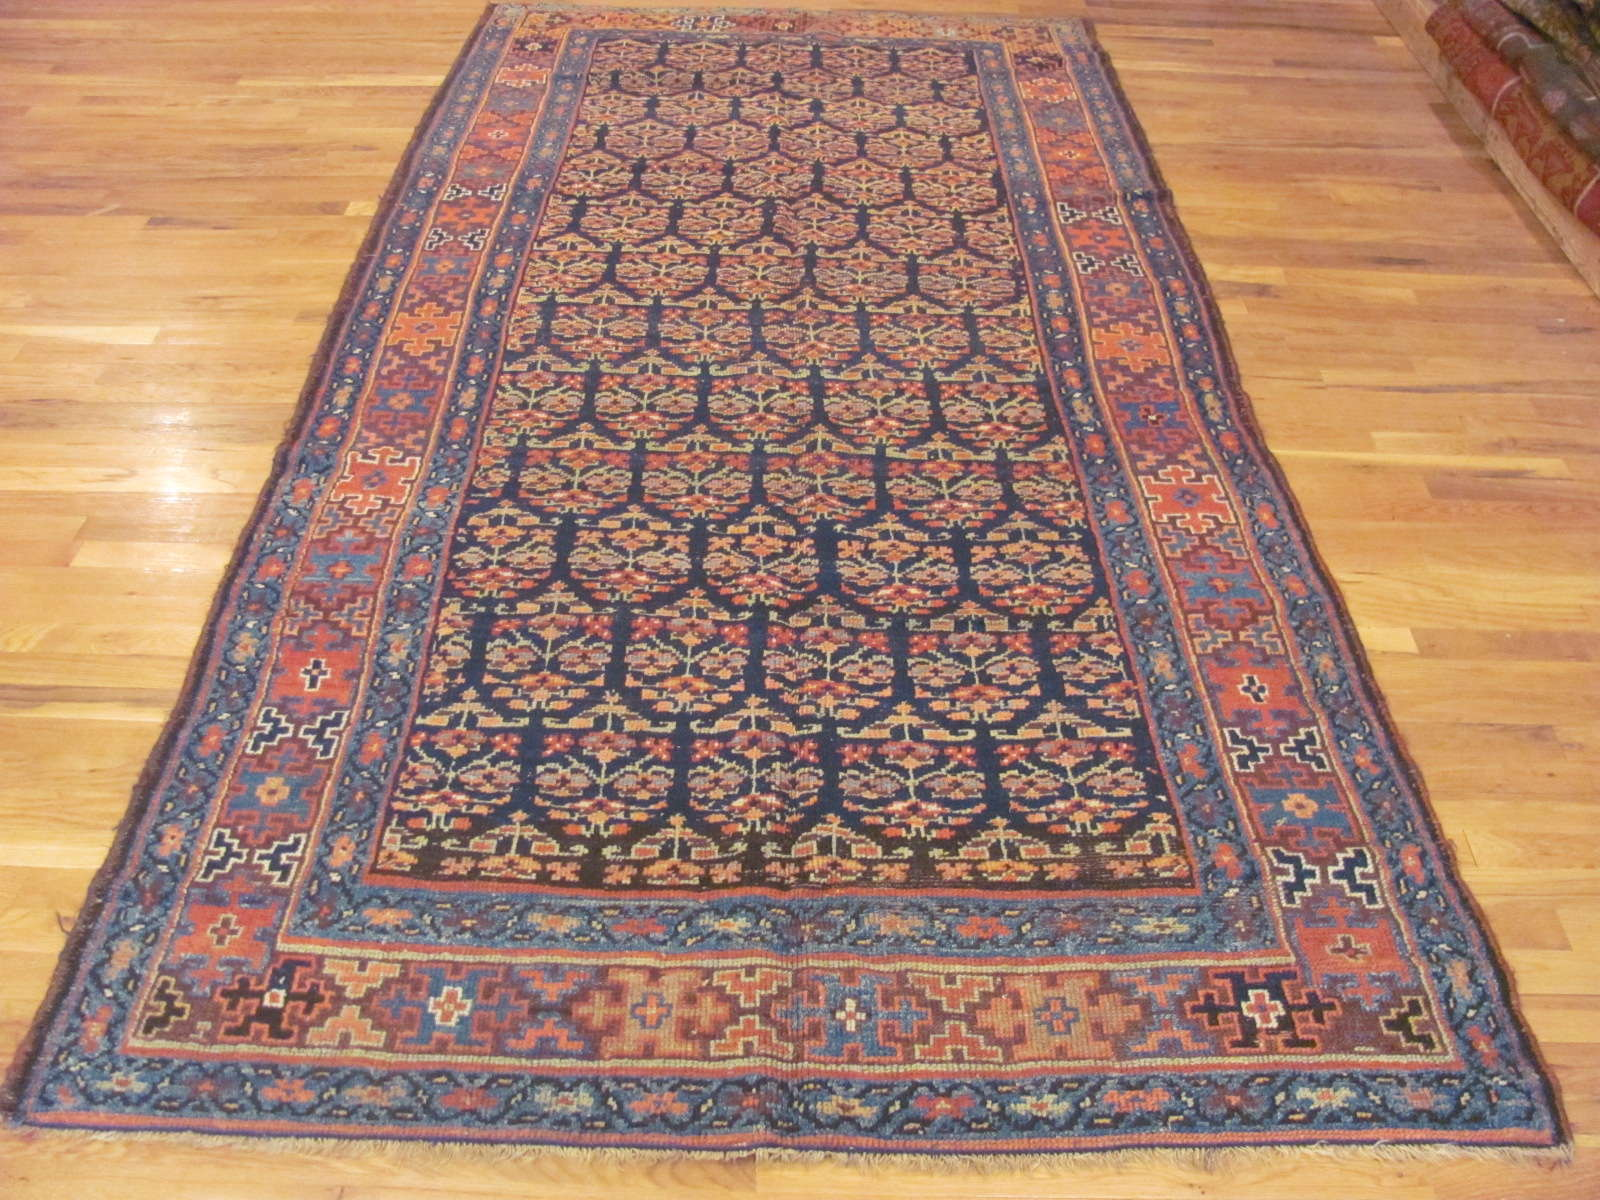 Kurd Rug | Northwest Persia | Handmade | Antique Circa 1920